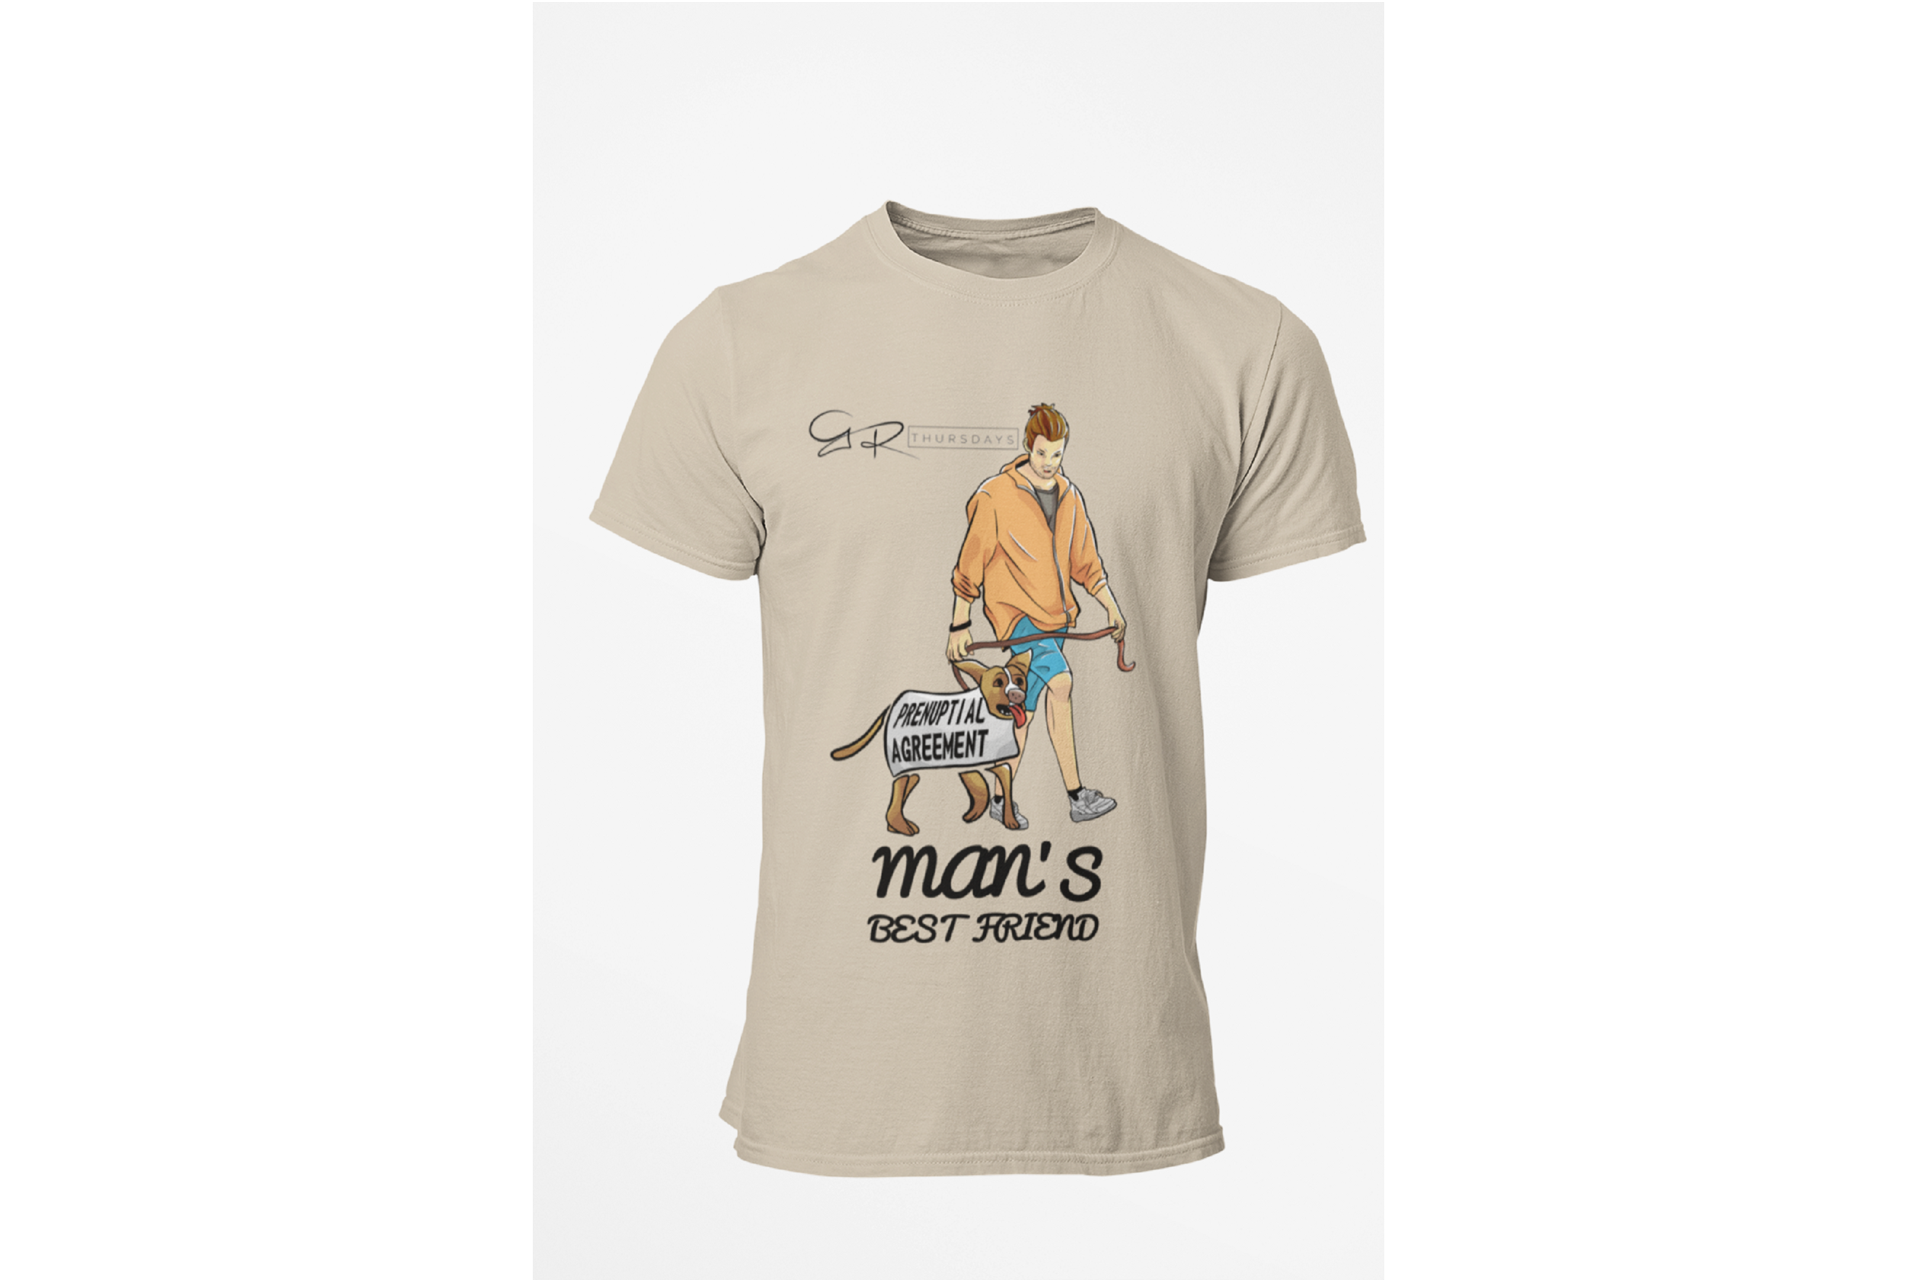 GRT Man's Best Friend - T-Shirt